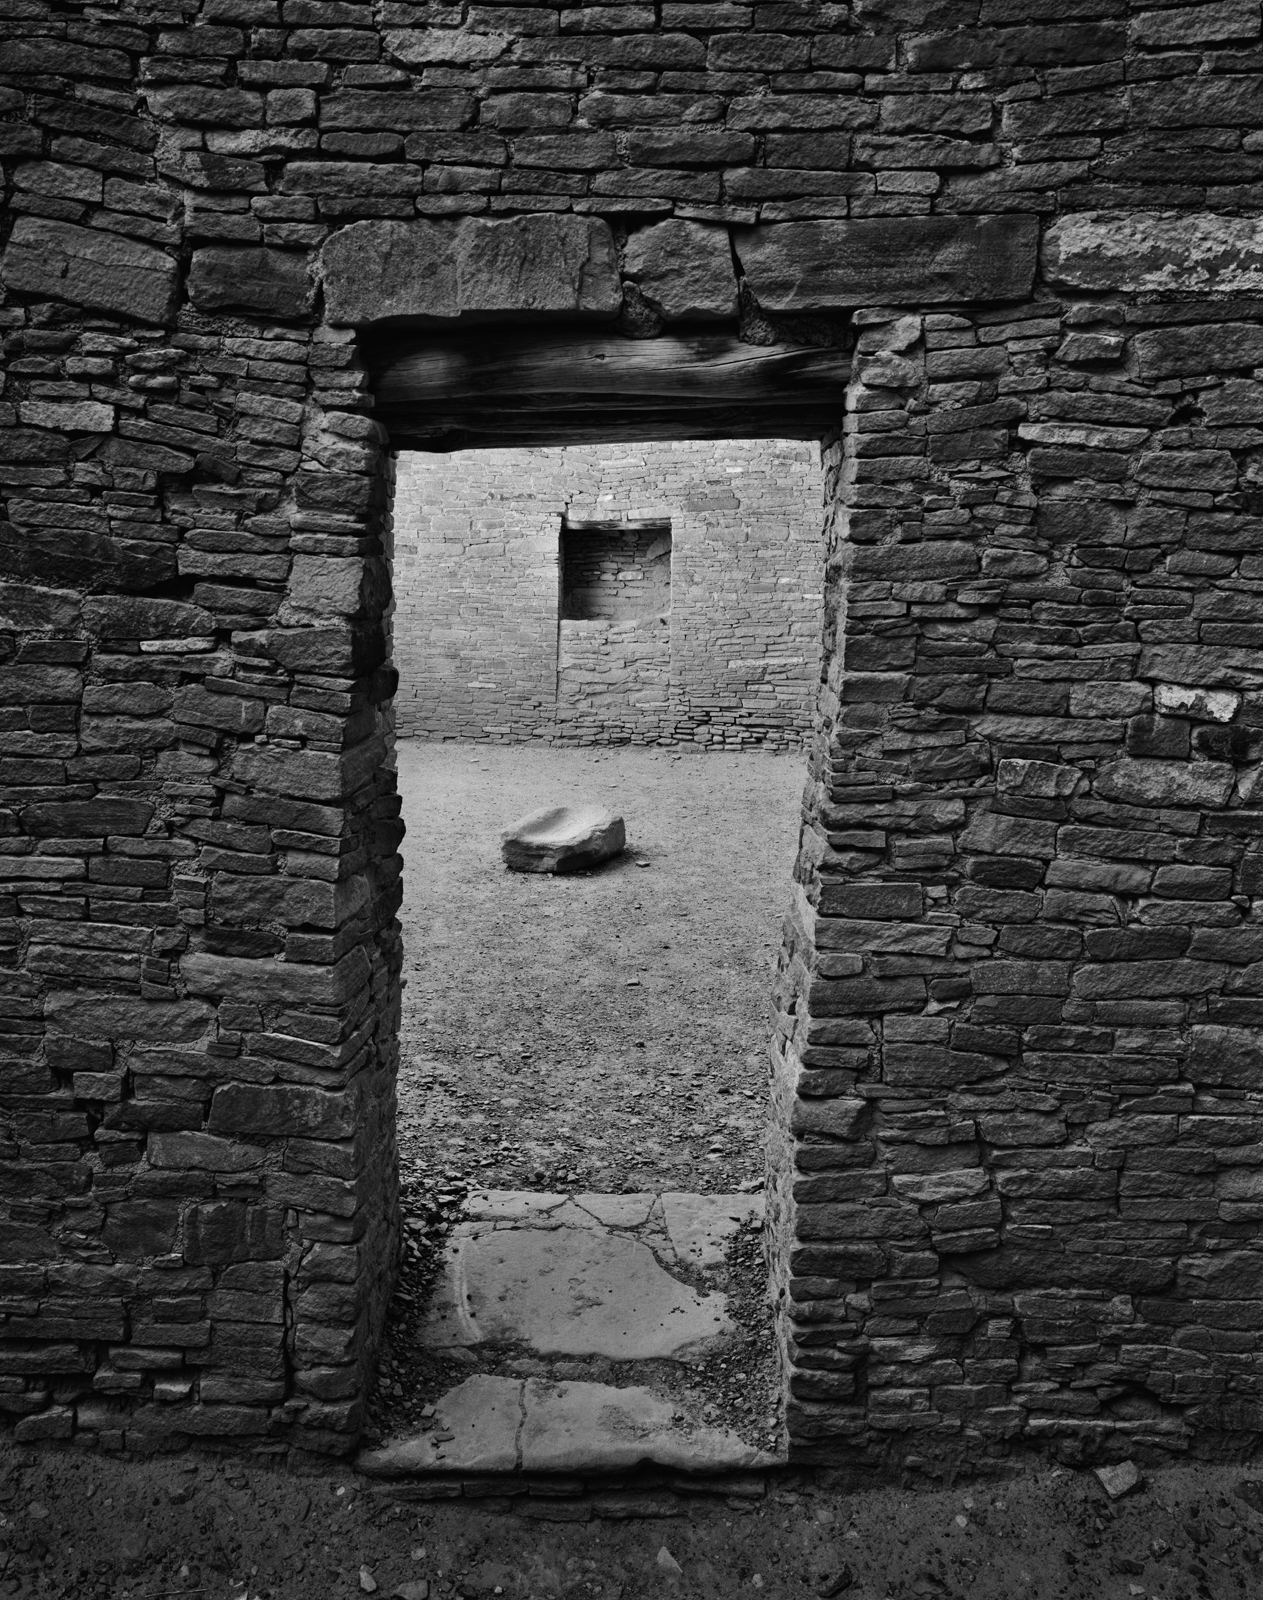 Pueblo Bonito Doorway and Ground-stone- Chaco Culture National Historical Park, New Mexico